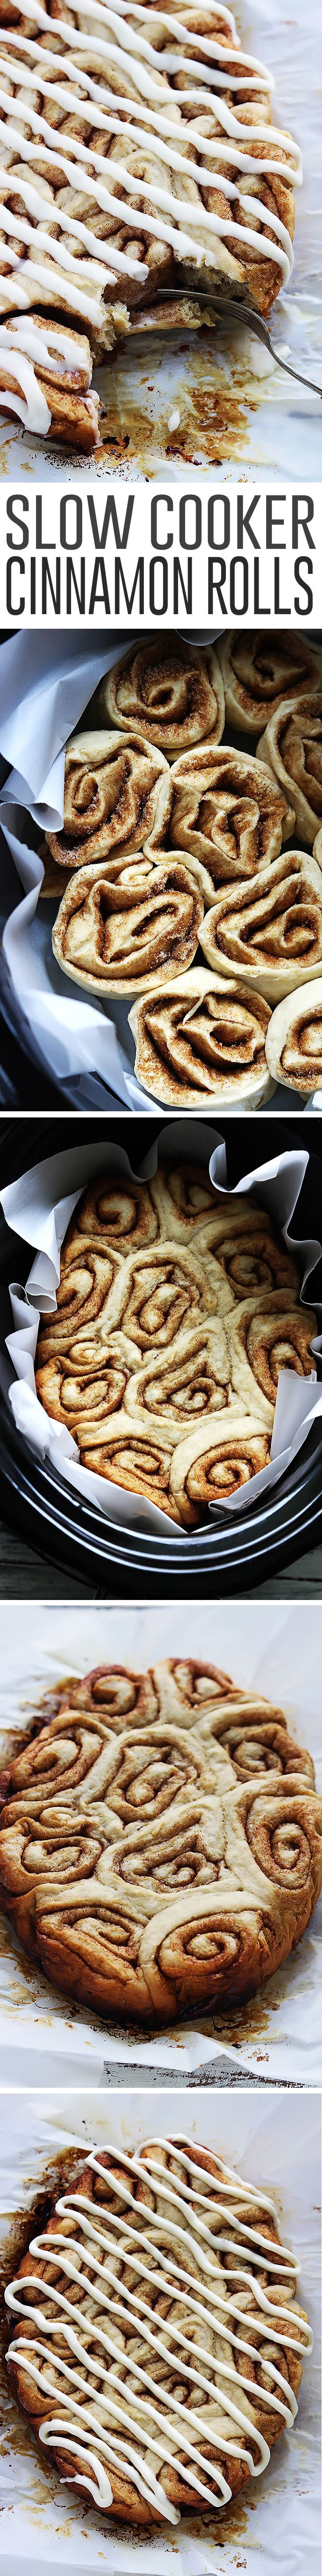 Fluffy cinnamon rolls made right in the crock pot, topped with rich cream cheese frosting!